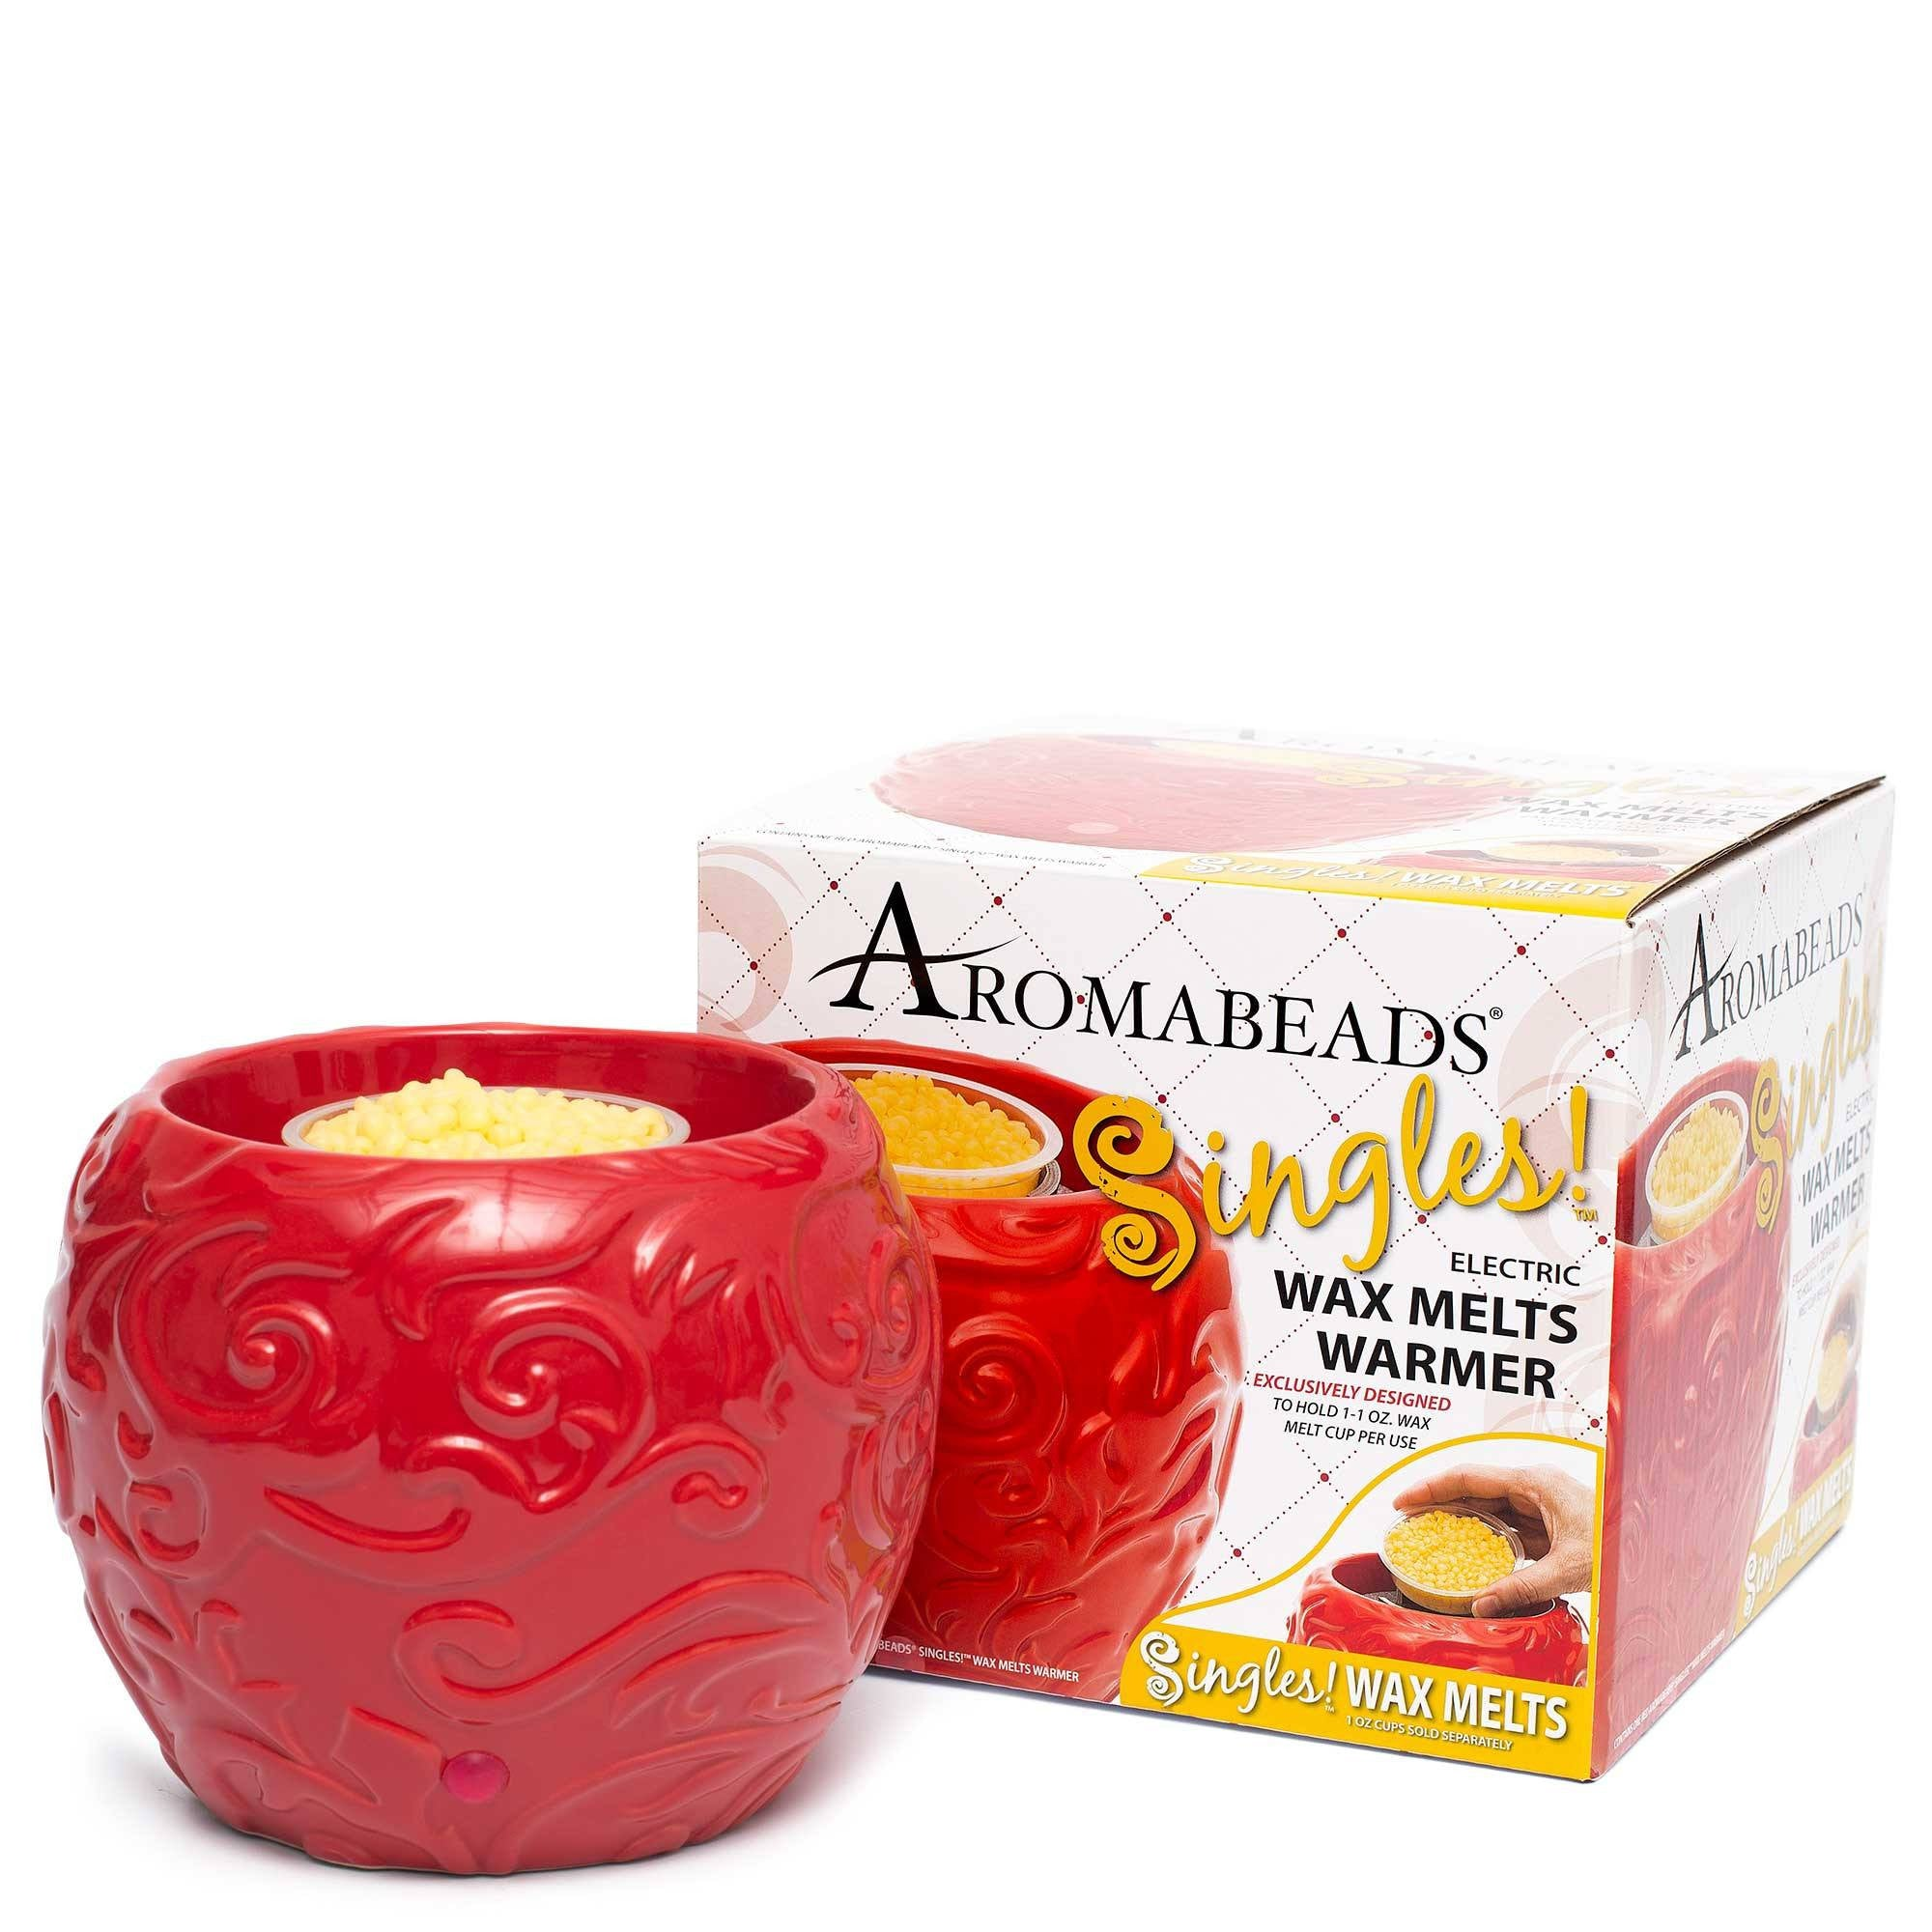 Aromabeads Singles South Seas Scented Wax Melts - Candlemart.com - 3